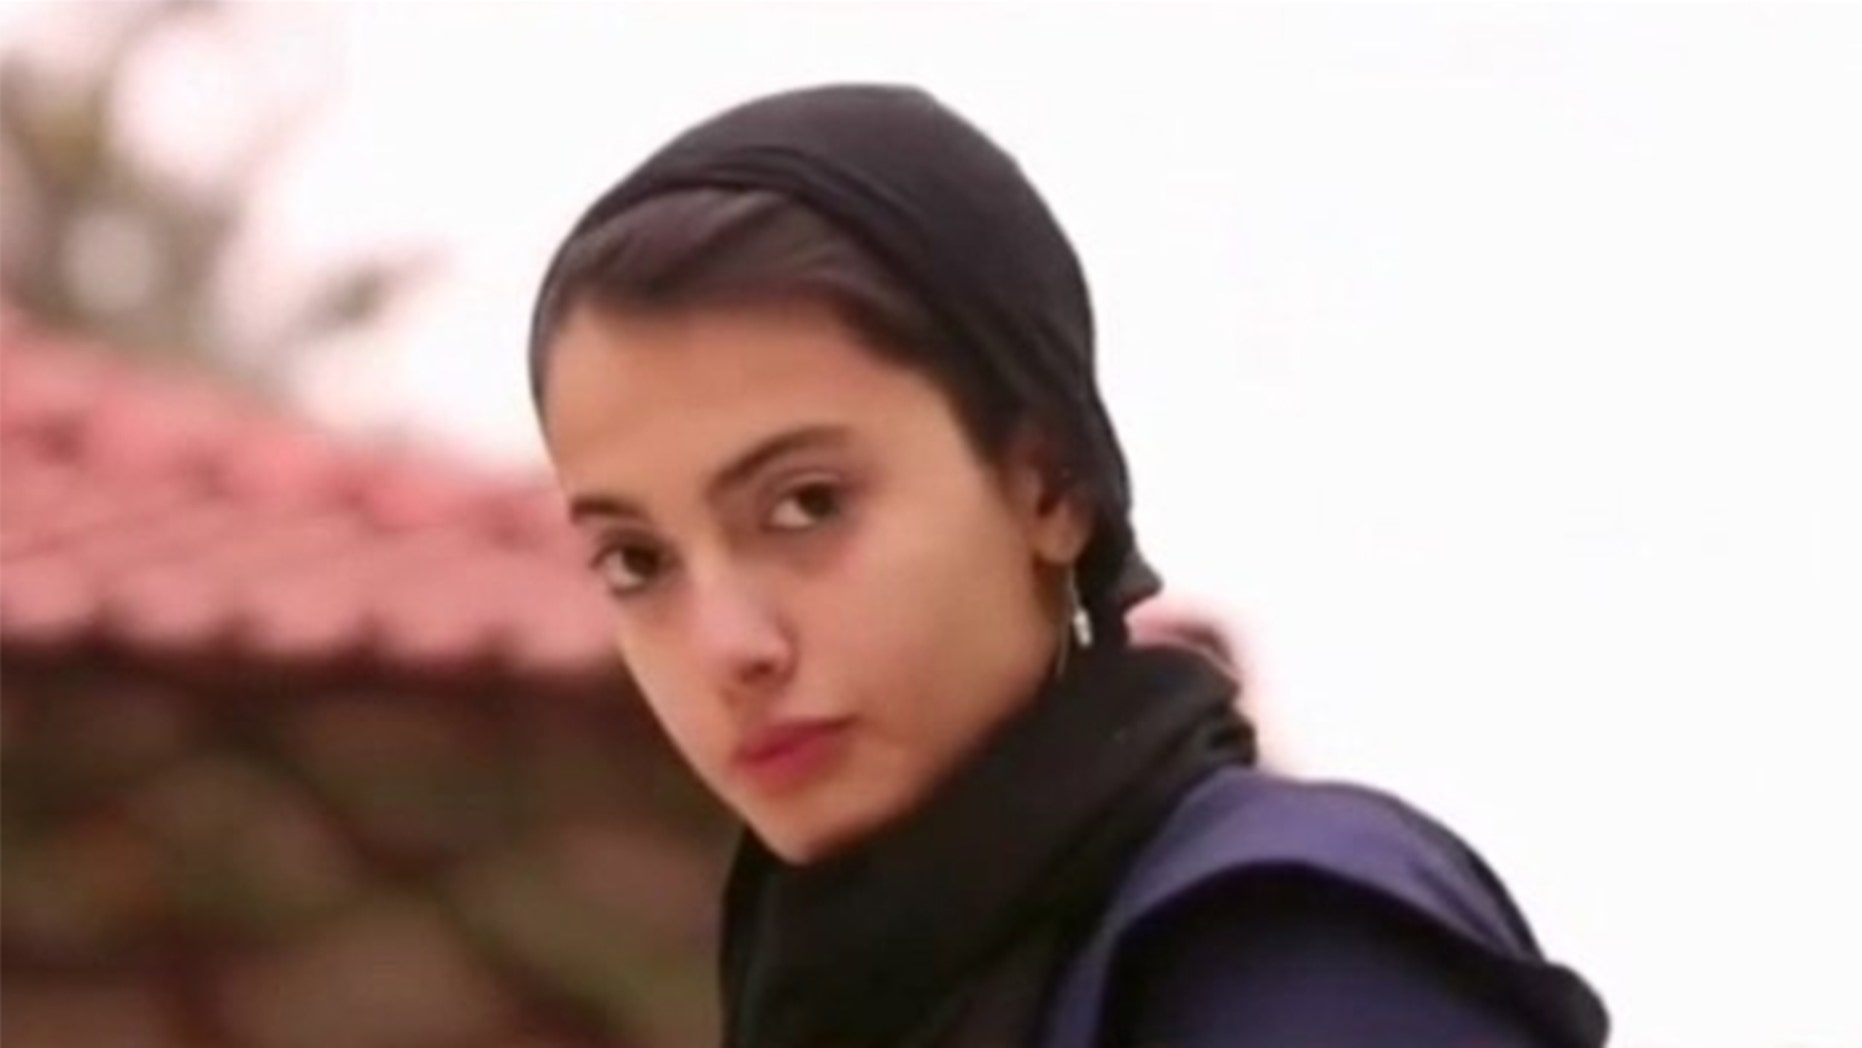 Maedeh Hojabri was arrested by Iranian police after she posted a video of herself dancing.